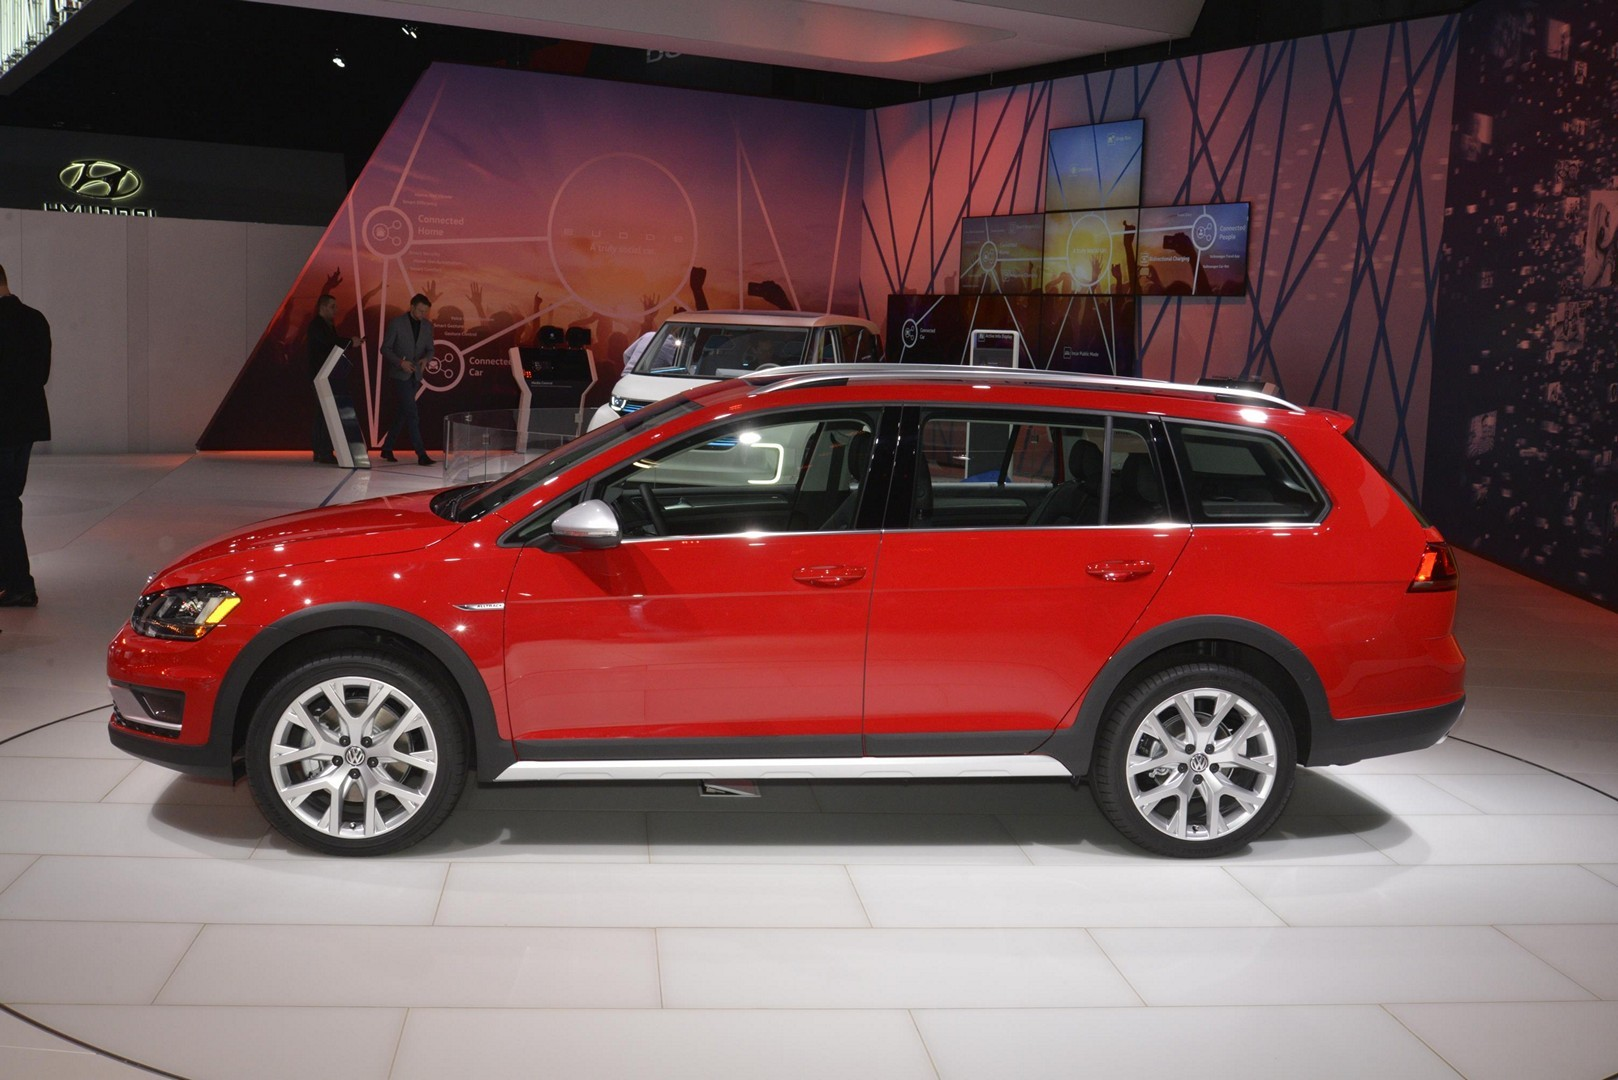 2017 vw golf alltrack has dual exhaust and red paint like a gti in new york autoevolution. Black Bedroom Furniture Sets. Home Design Ideas